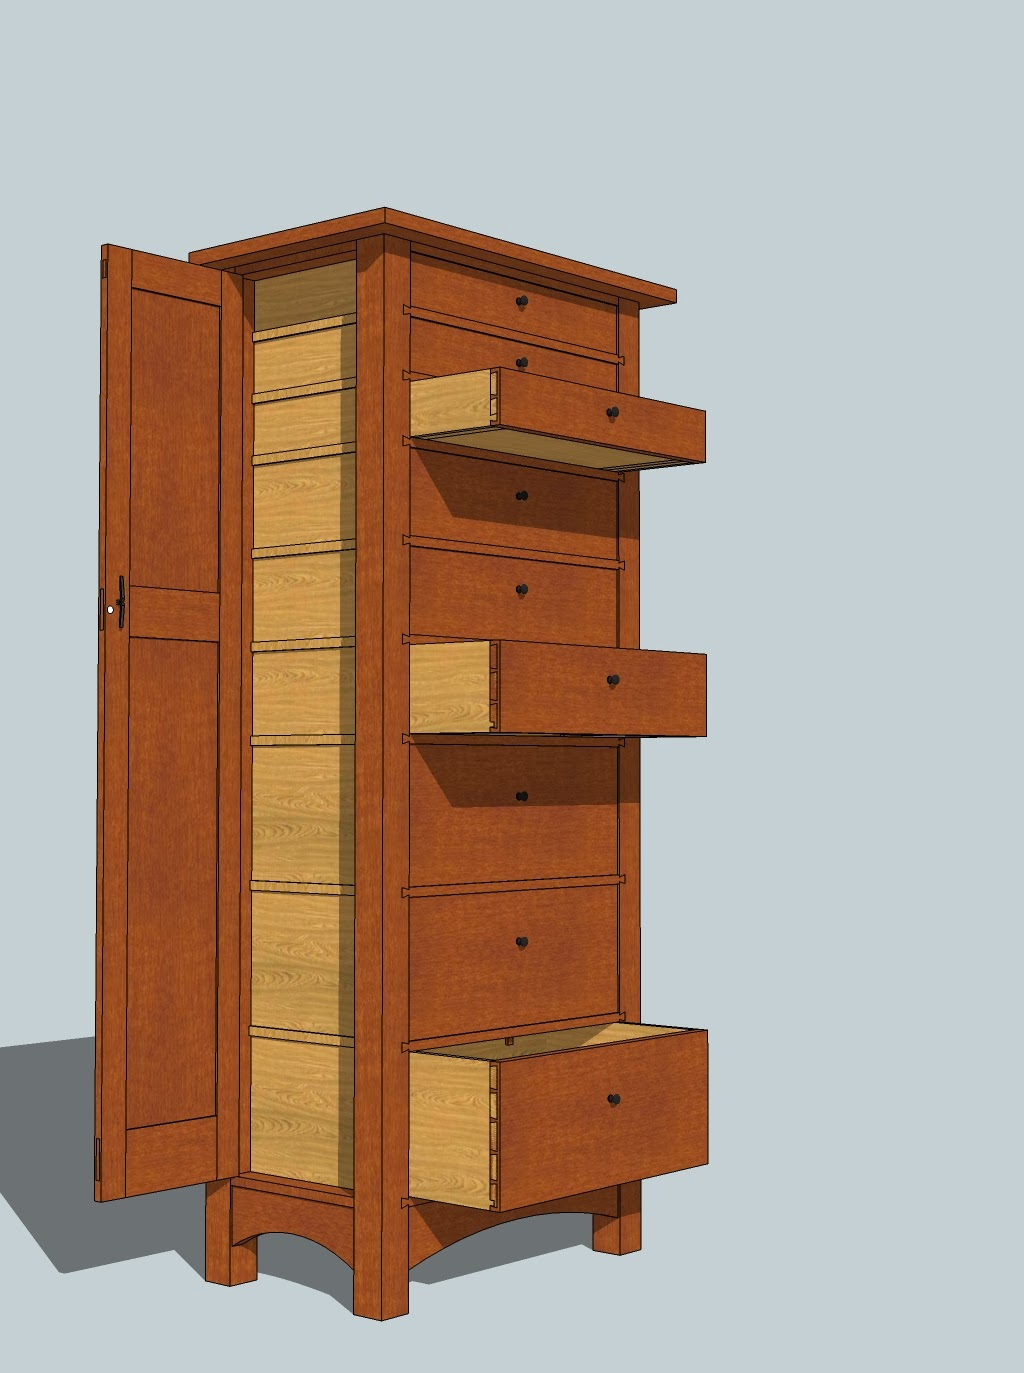 Honey Do Woodworking: Jewelry / Lingerie Chest Project Begins